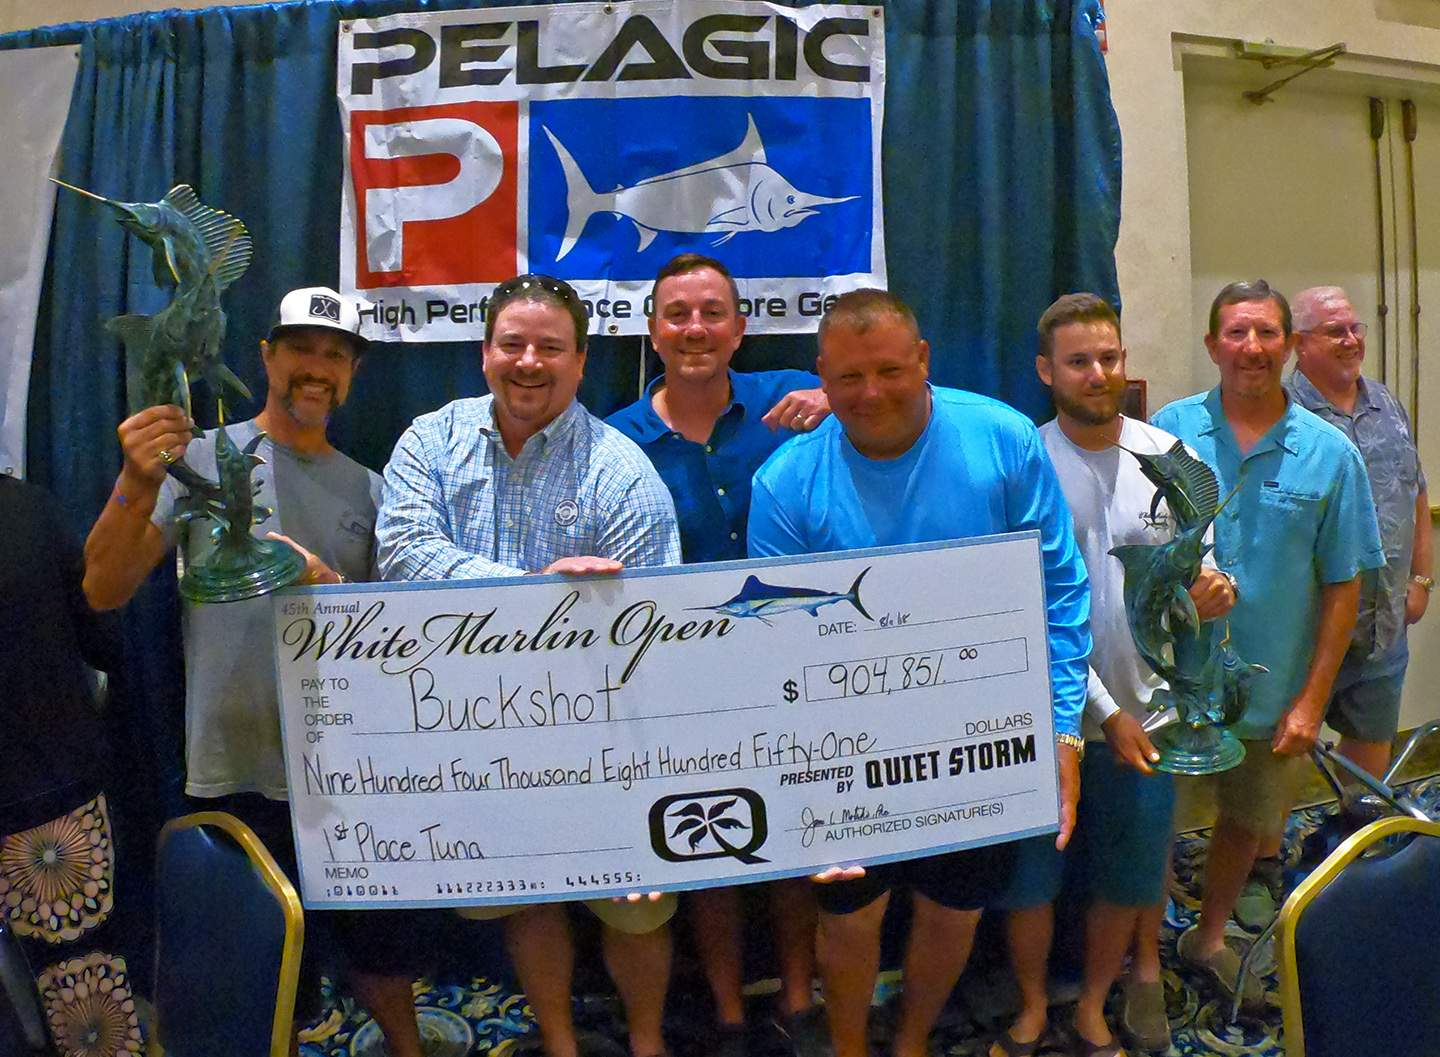 Pelagic White Marlin Open 2018 Buckshot check